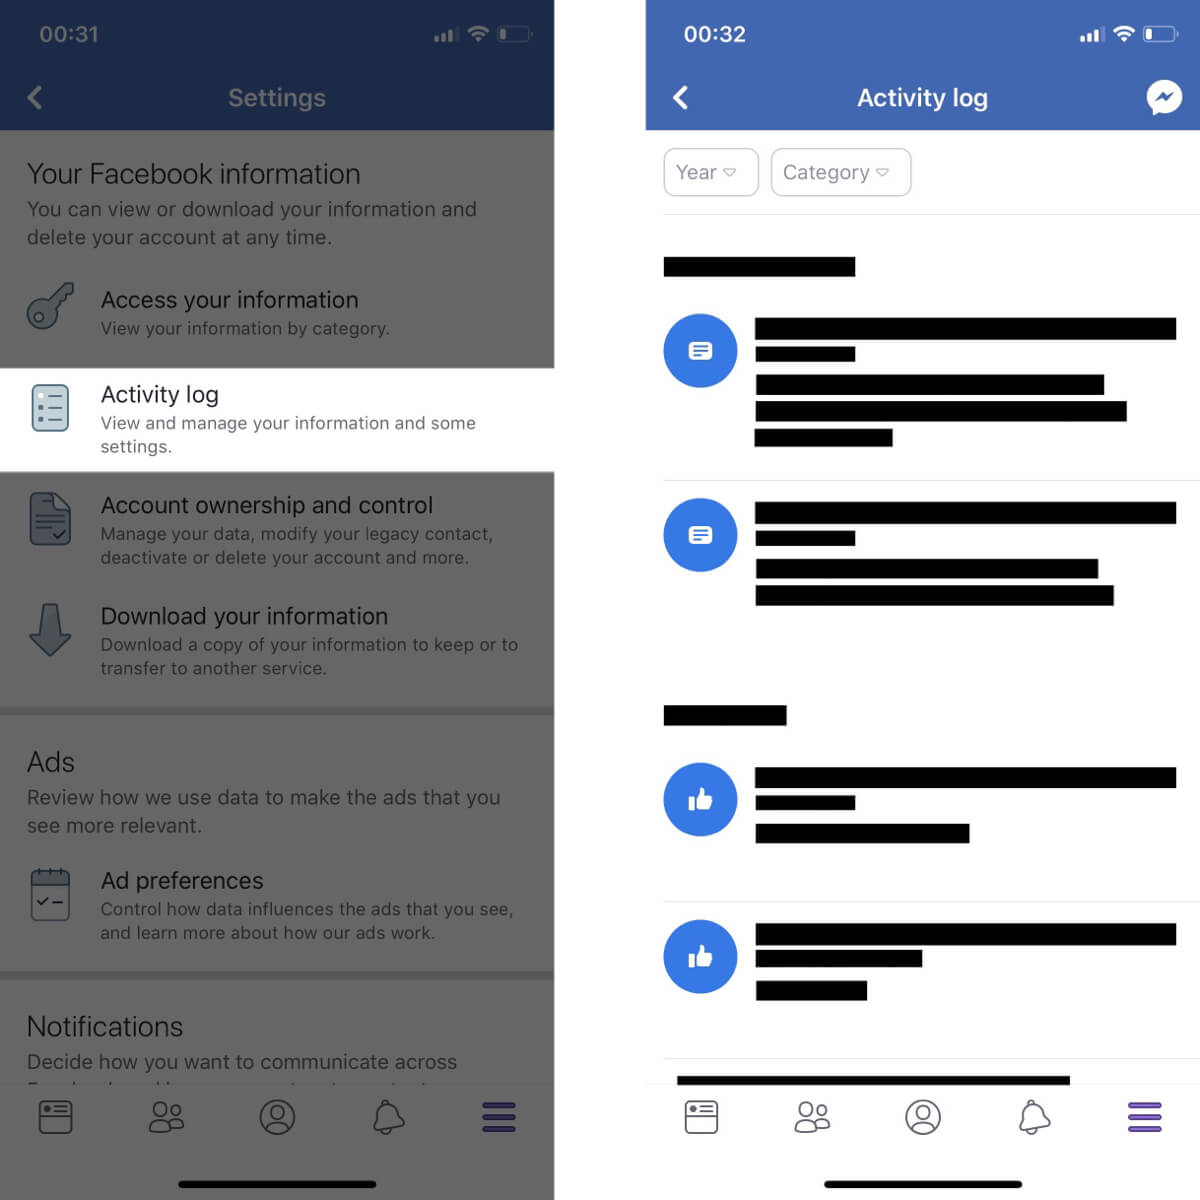 Screenshots showing how to view your activity log on Facebook.